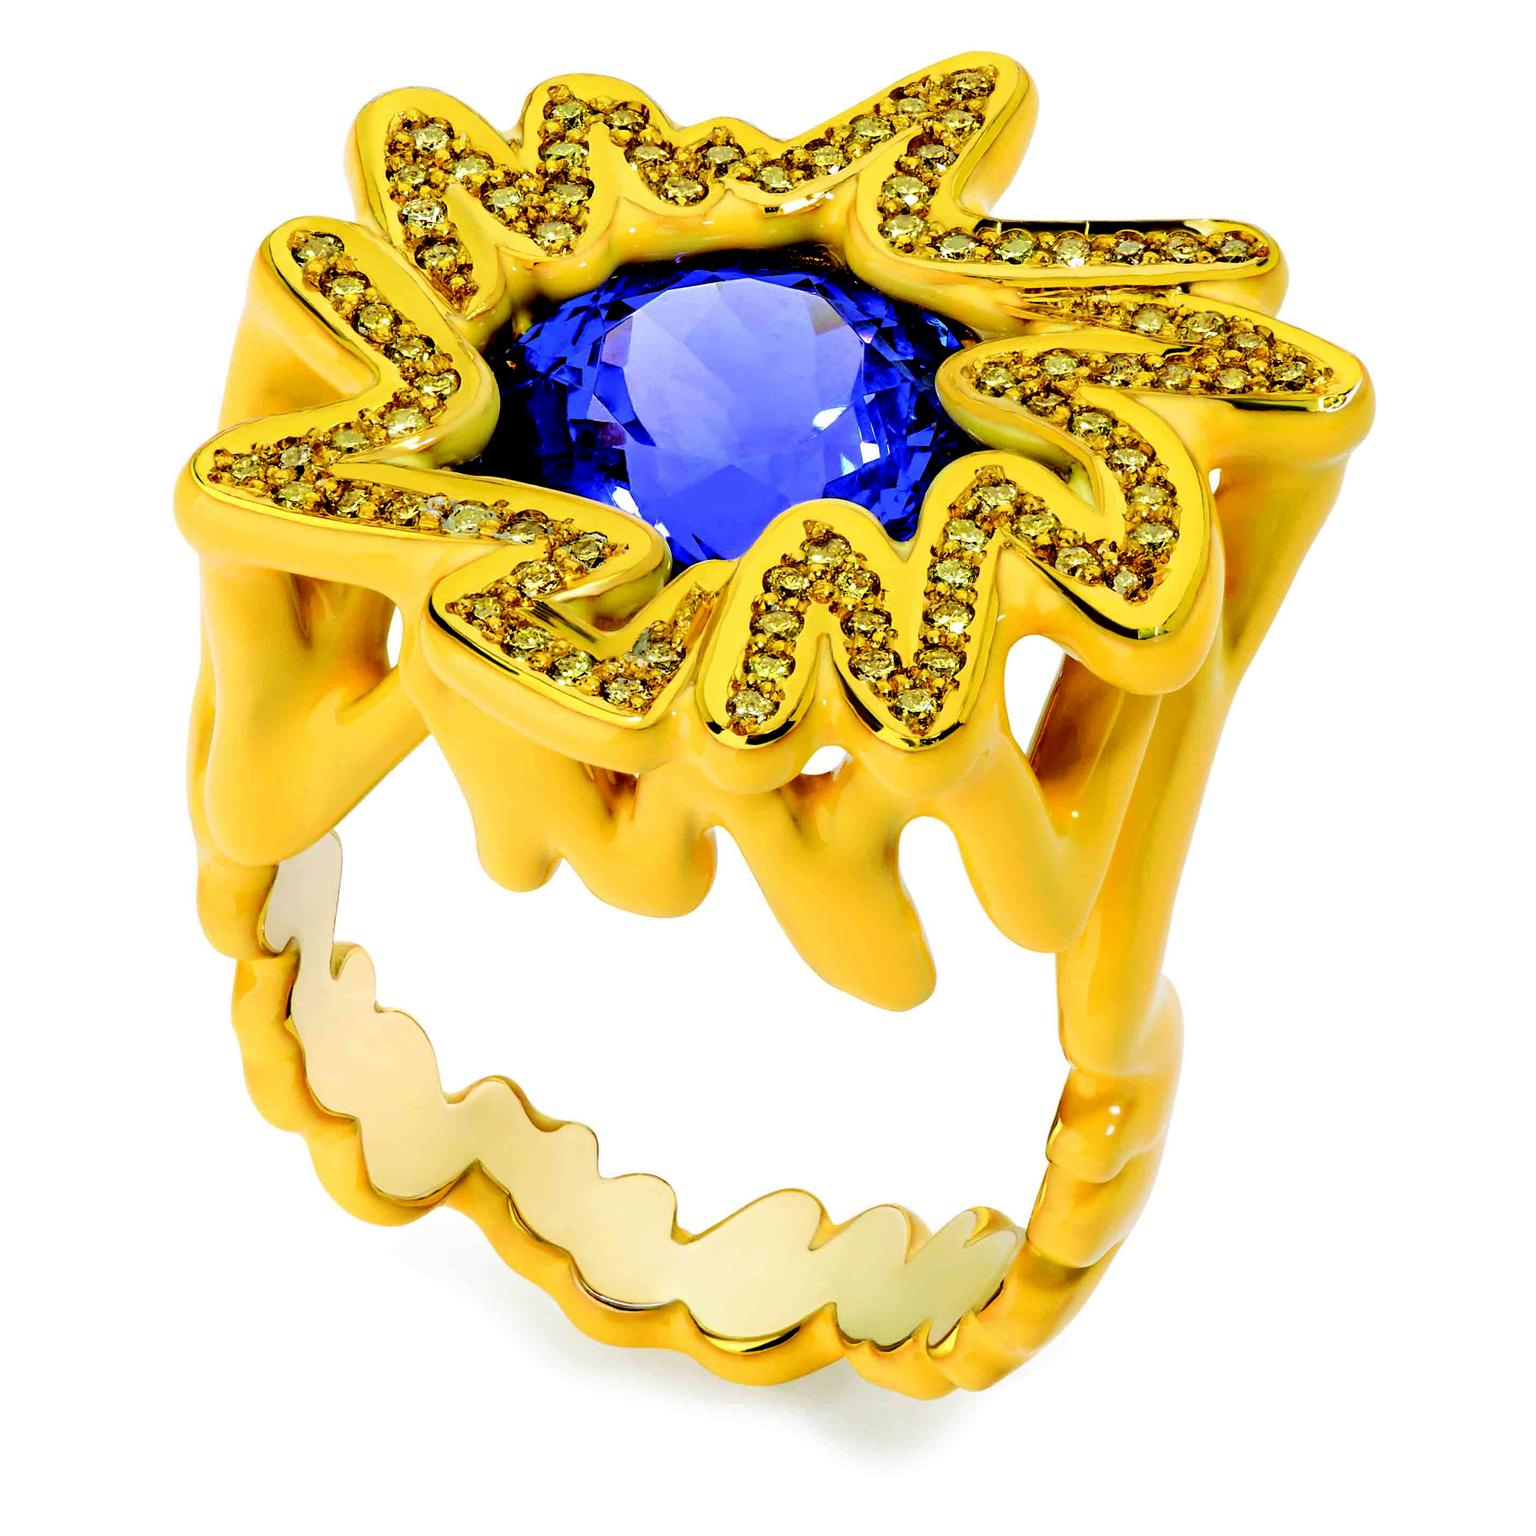 Solange Azagury-Partridge Scribbles Blue & Yellow Ring